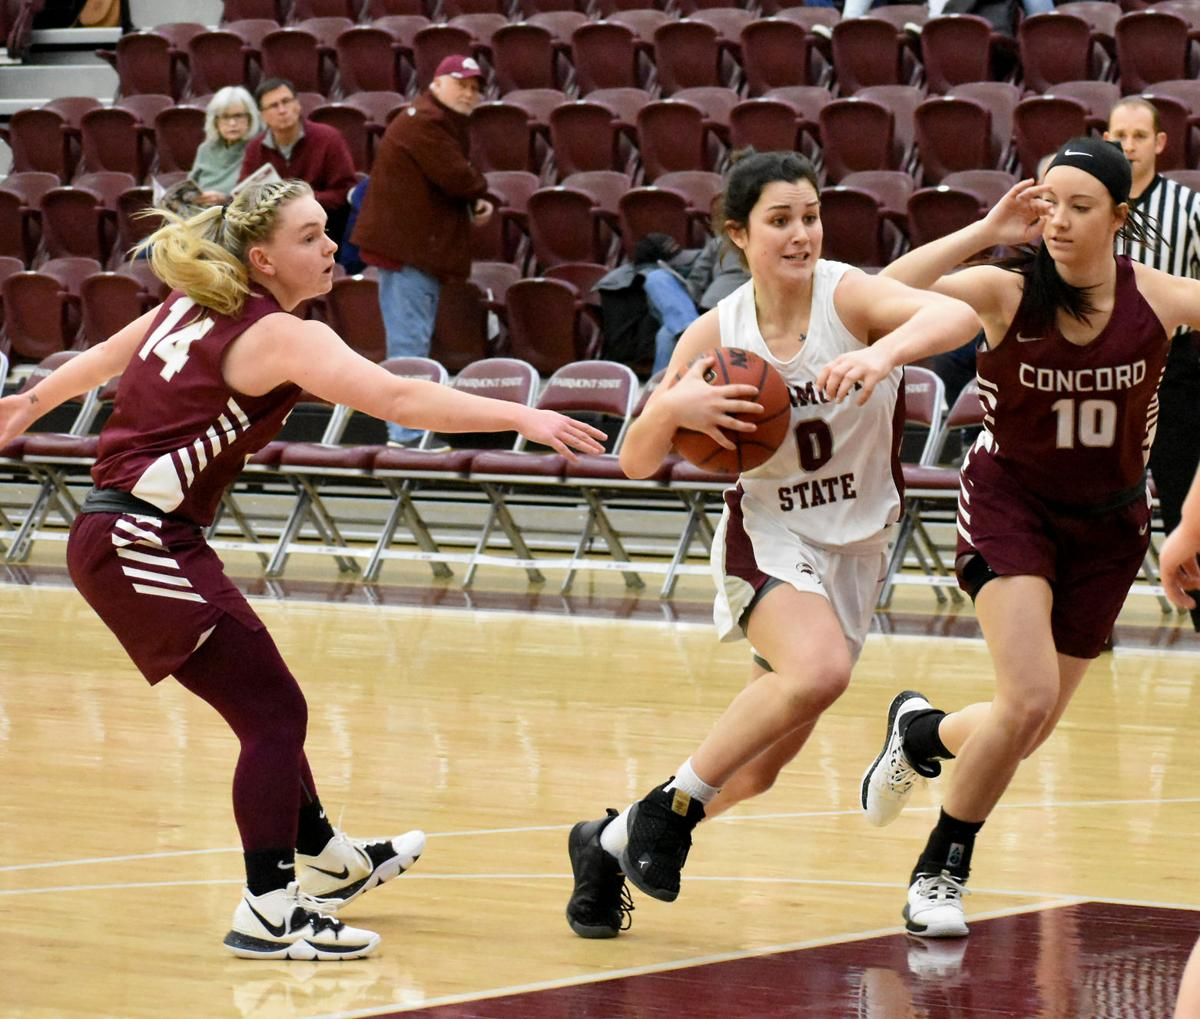 Falcons Fall against hot-shooting Mountain Lions